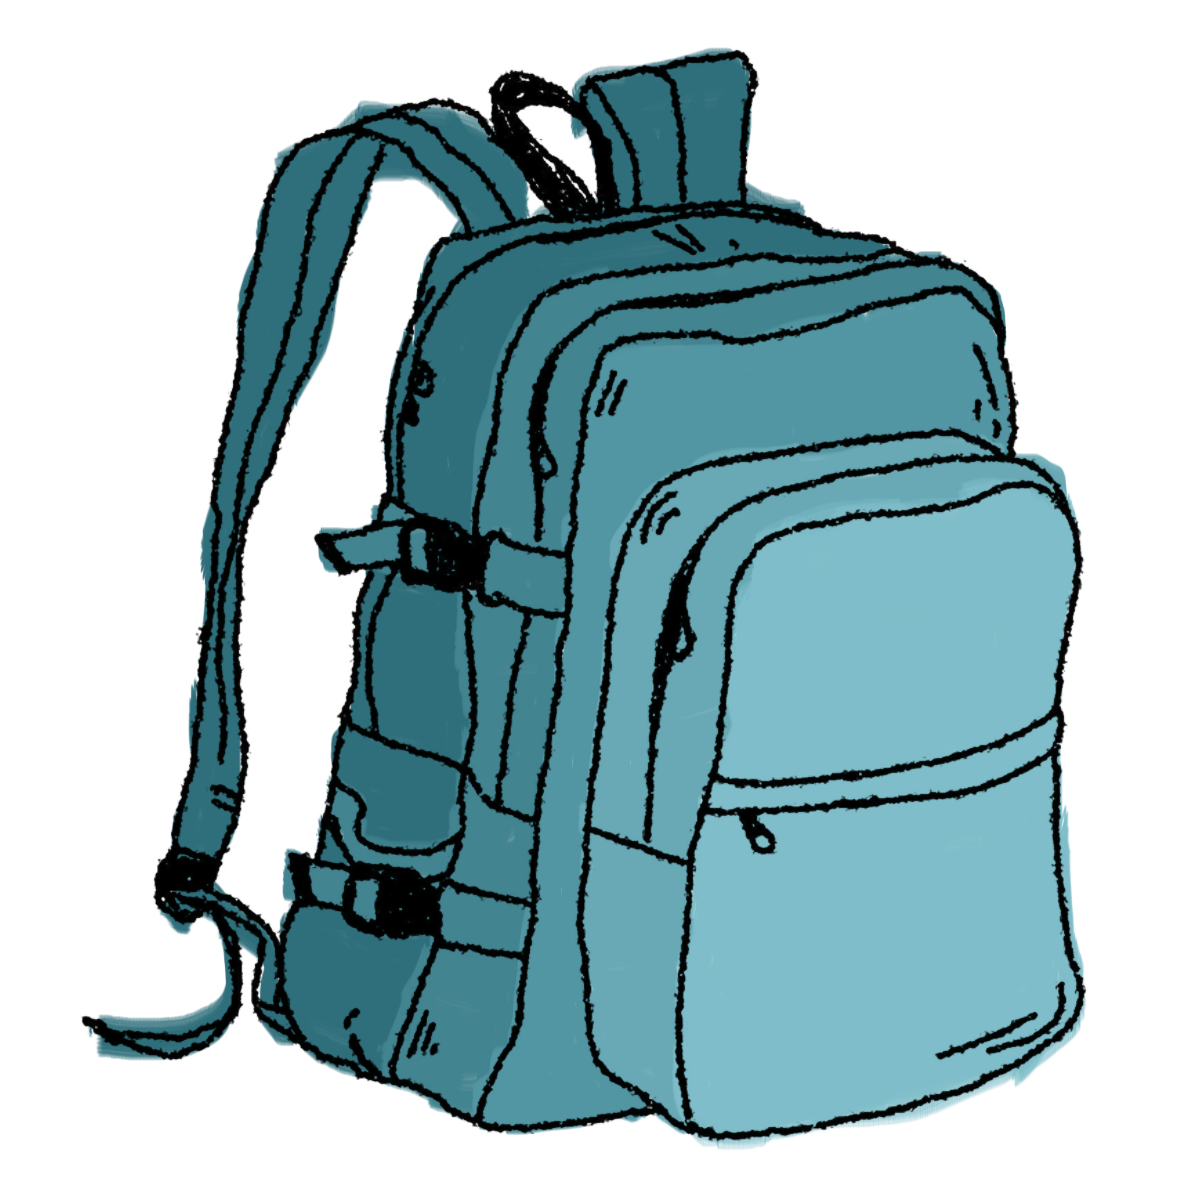 Luggage clipart suitcase handle. Hiking backpack clip art